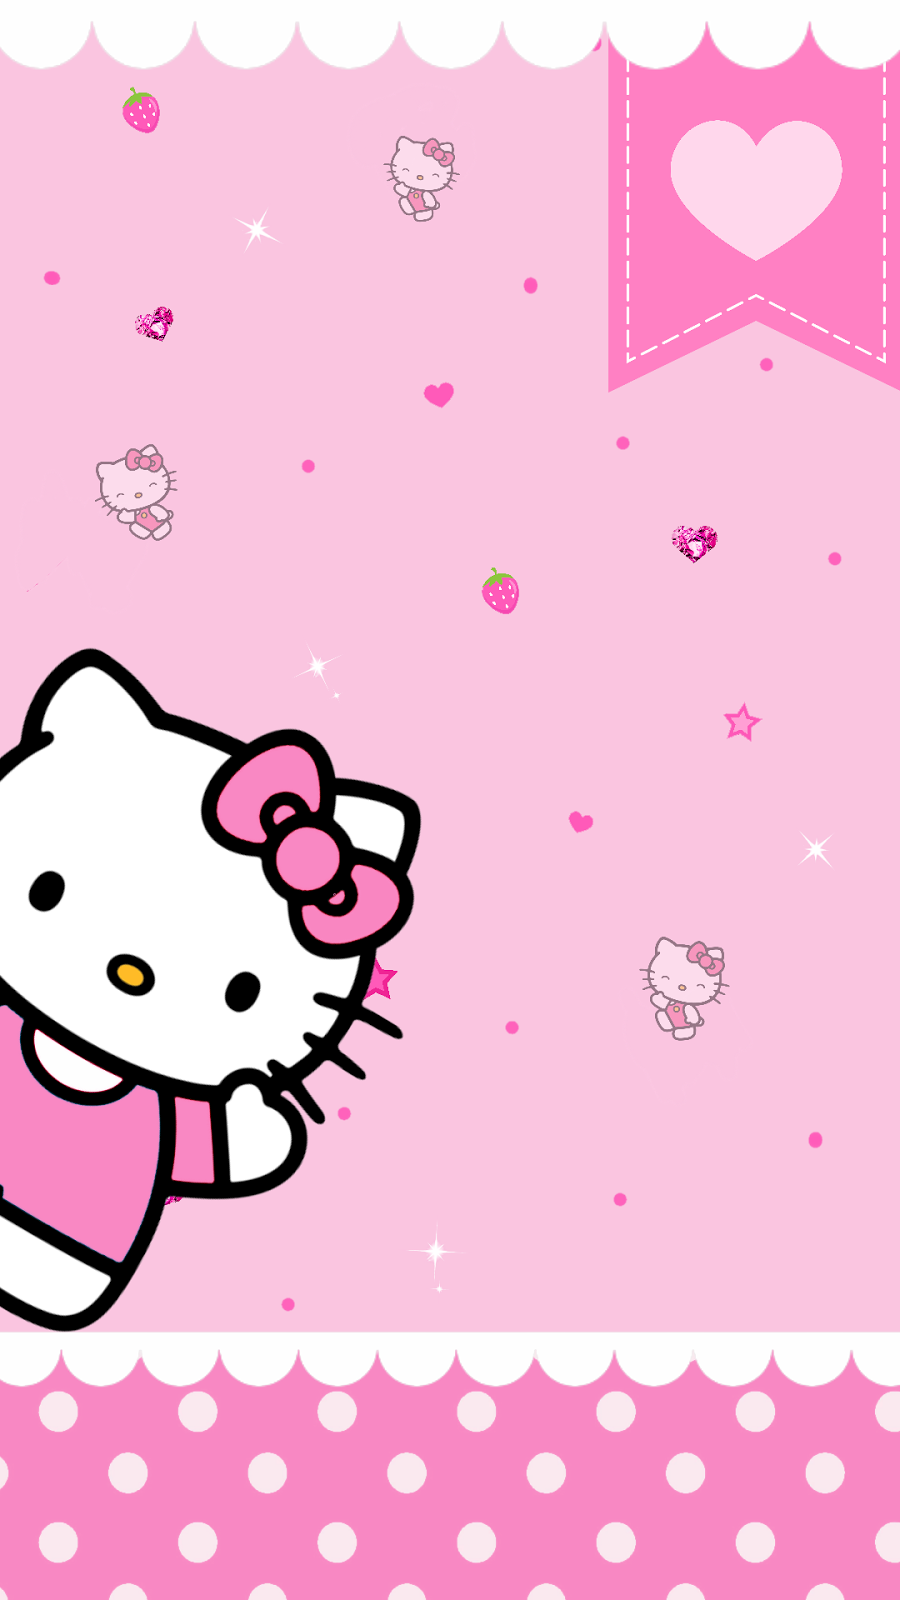 PC 96 Hello Kitty Wallpapers 900x1600 PNG